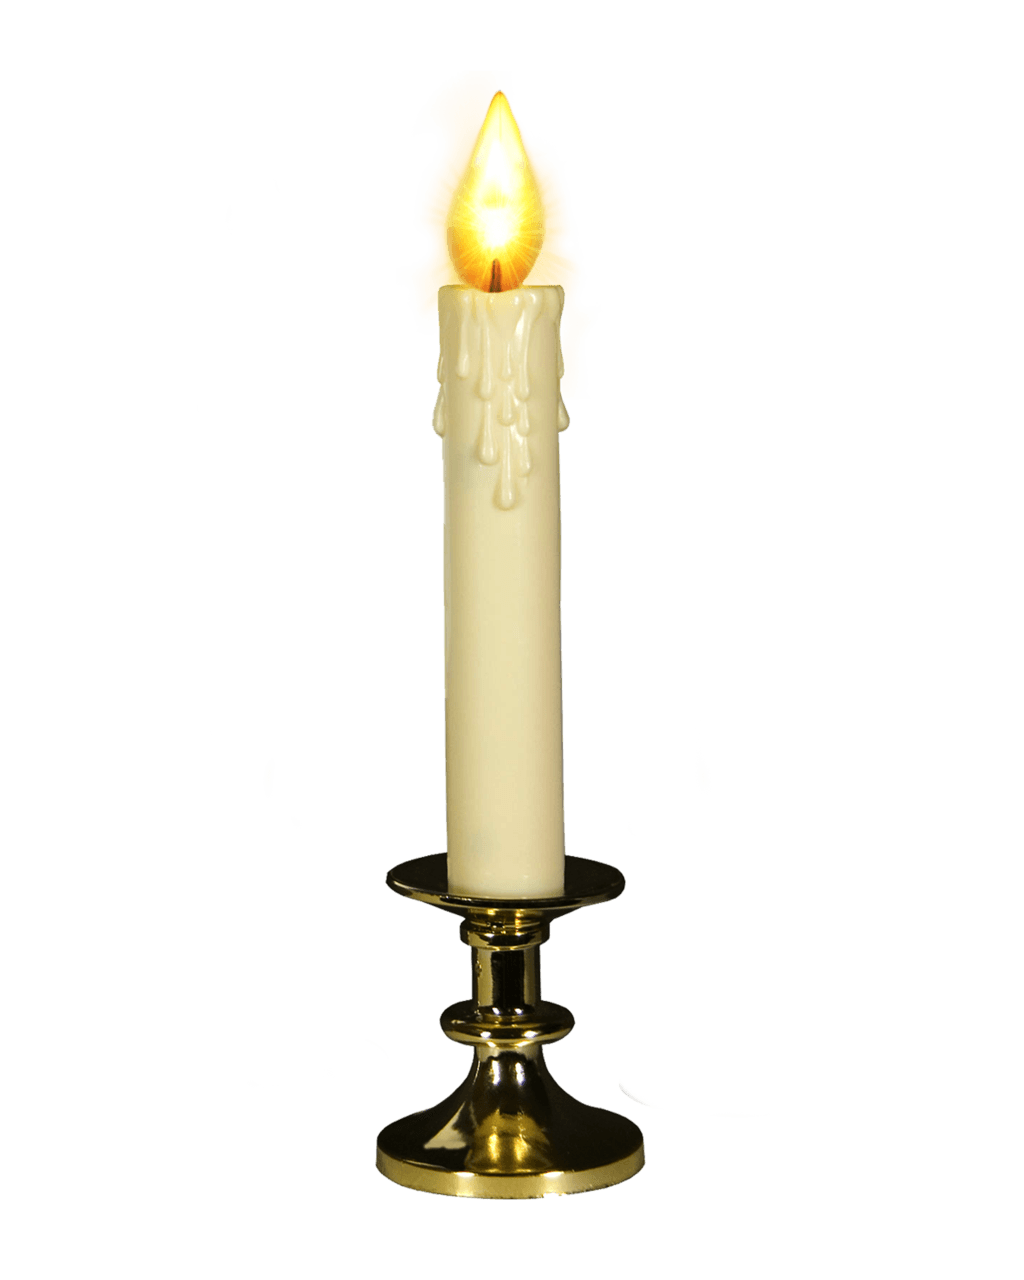 vector freeuse download Candle transparent PNG images